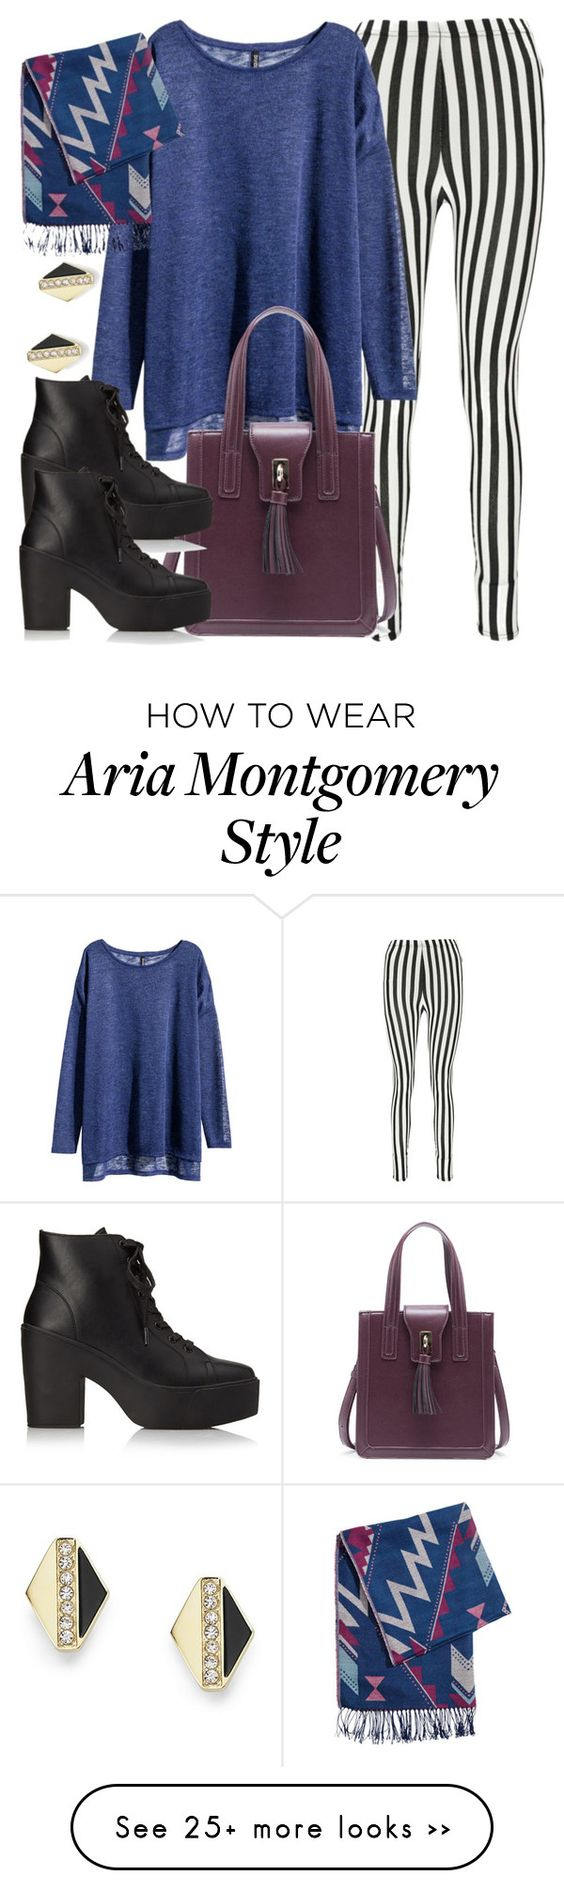 """""""Aria Montgomery inspired outfit"""" by liarsstyle on Polyvore featuring Boohoo, H&M, Sole Society, Forever 21 and FOSSIL"""